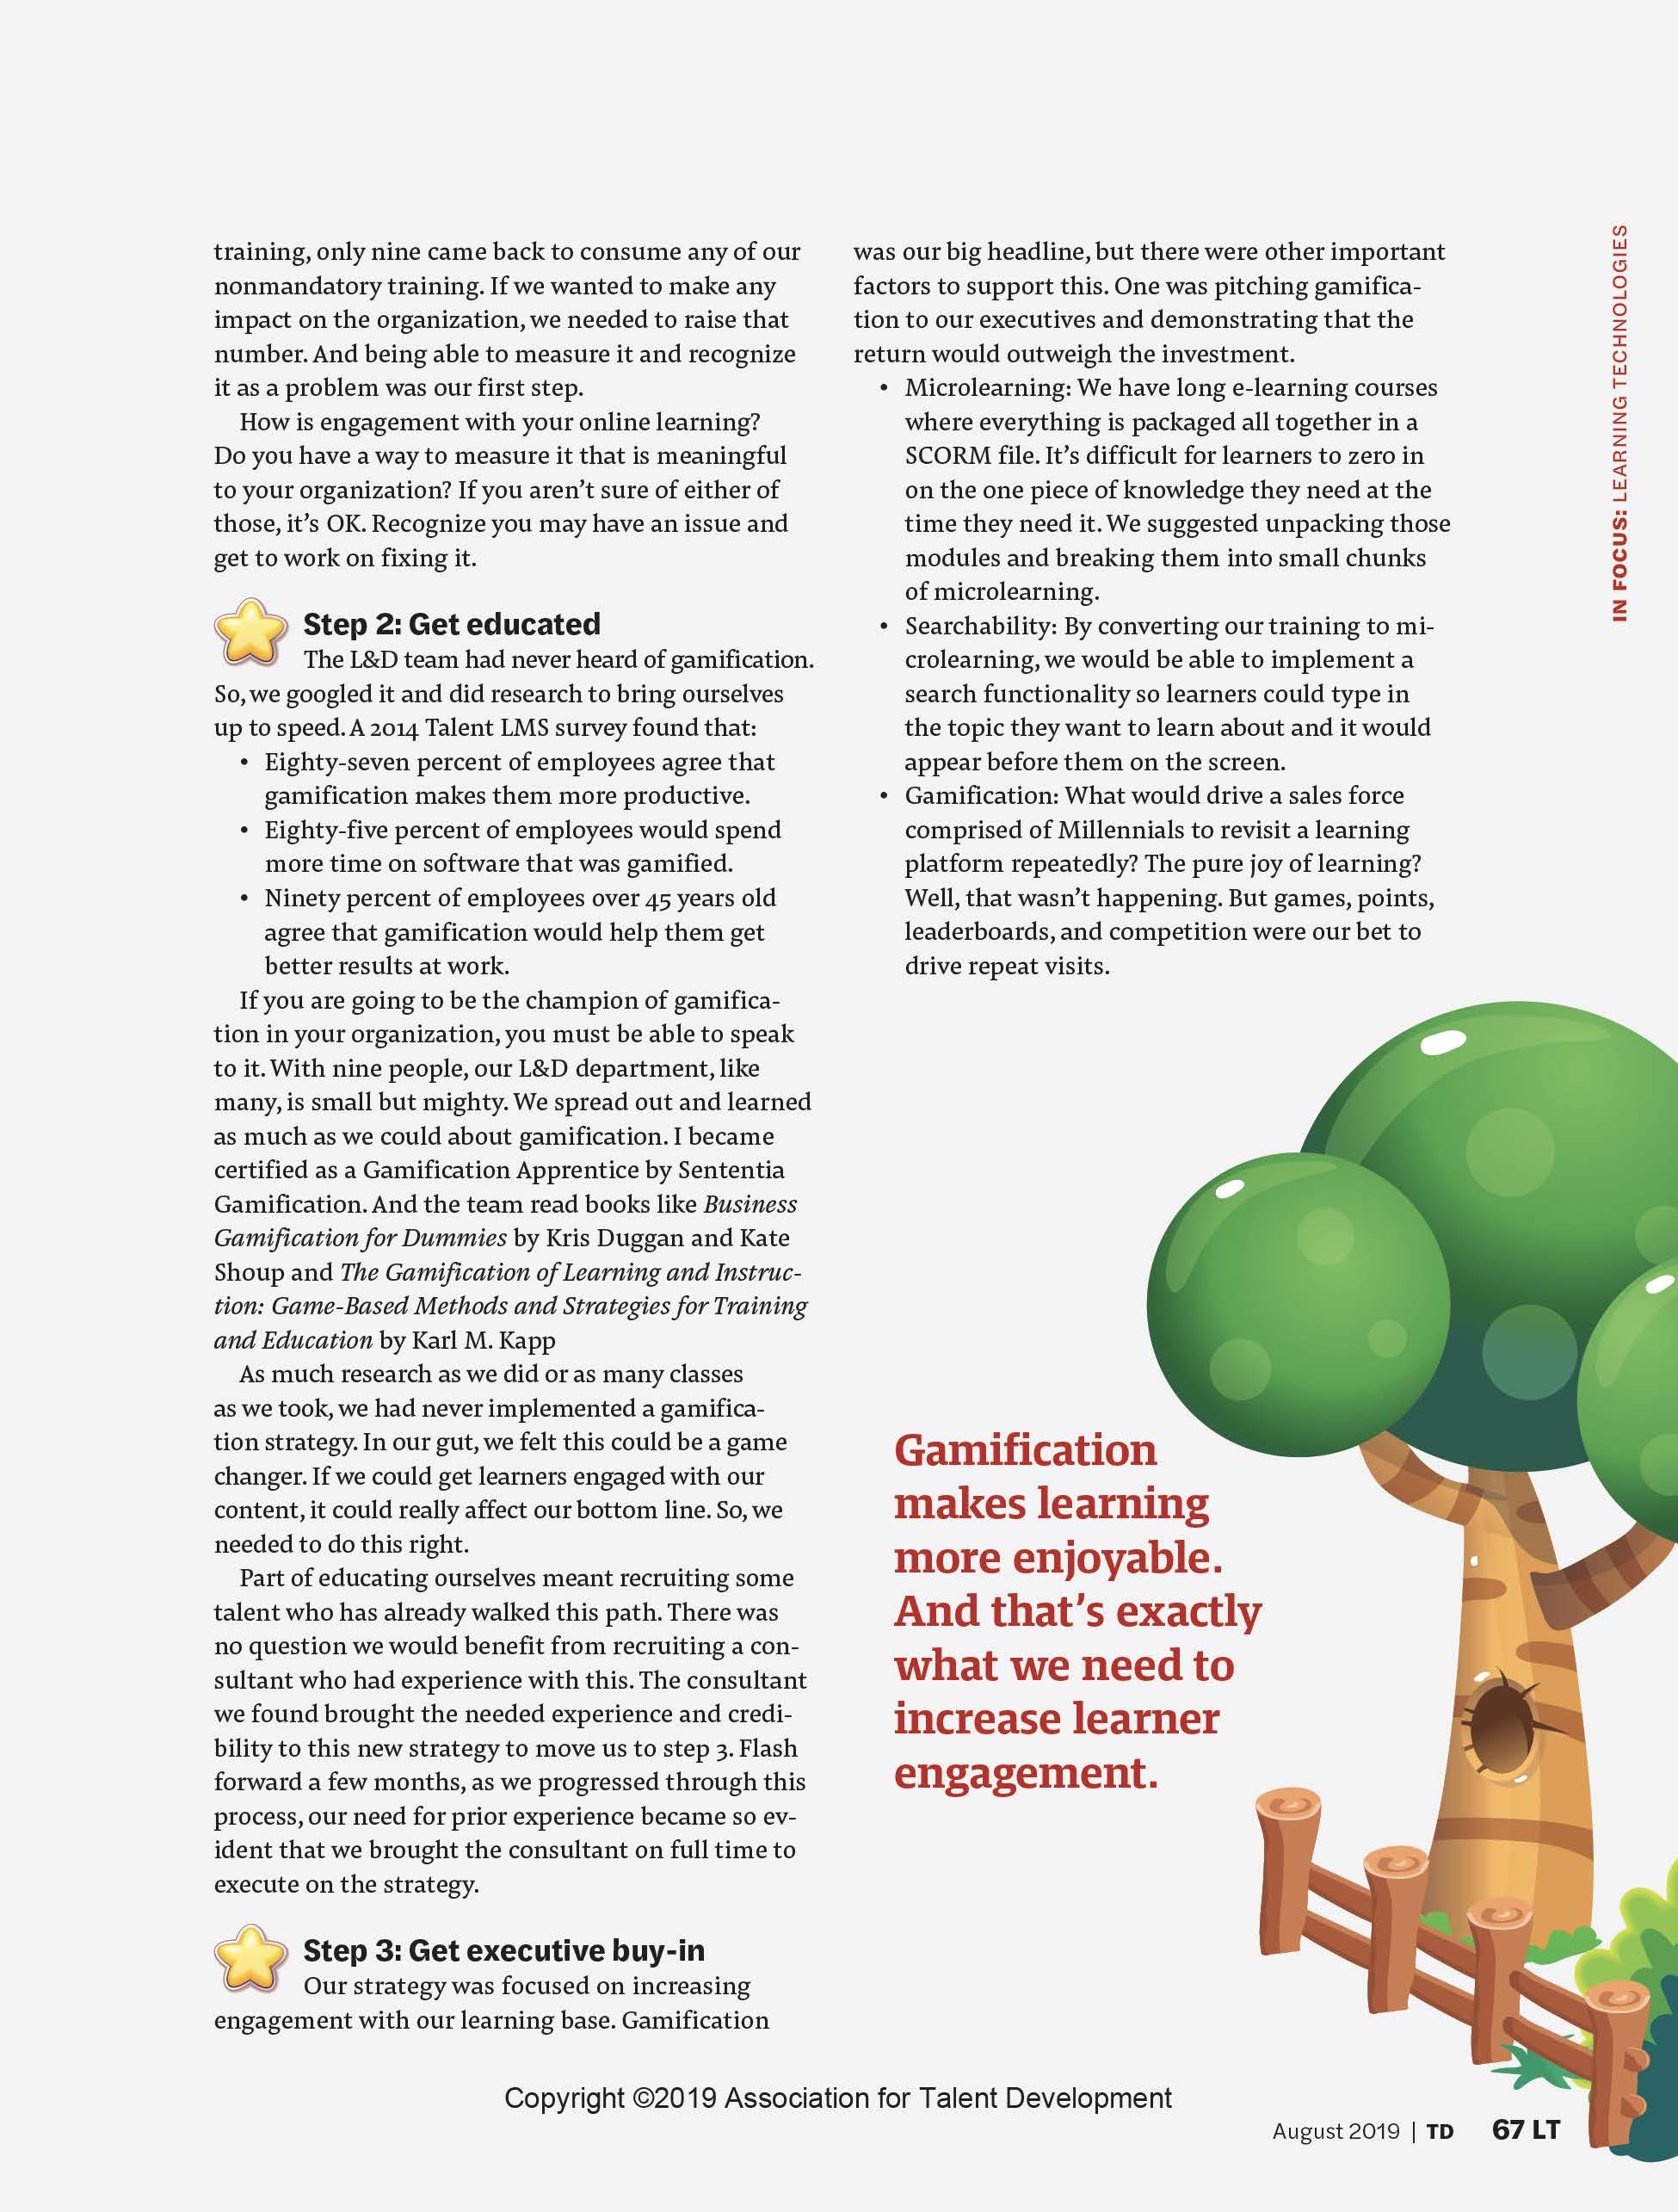 How Gamification Boosts Employee Engagement in Corporate Training Page 3